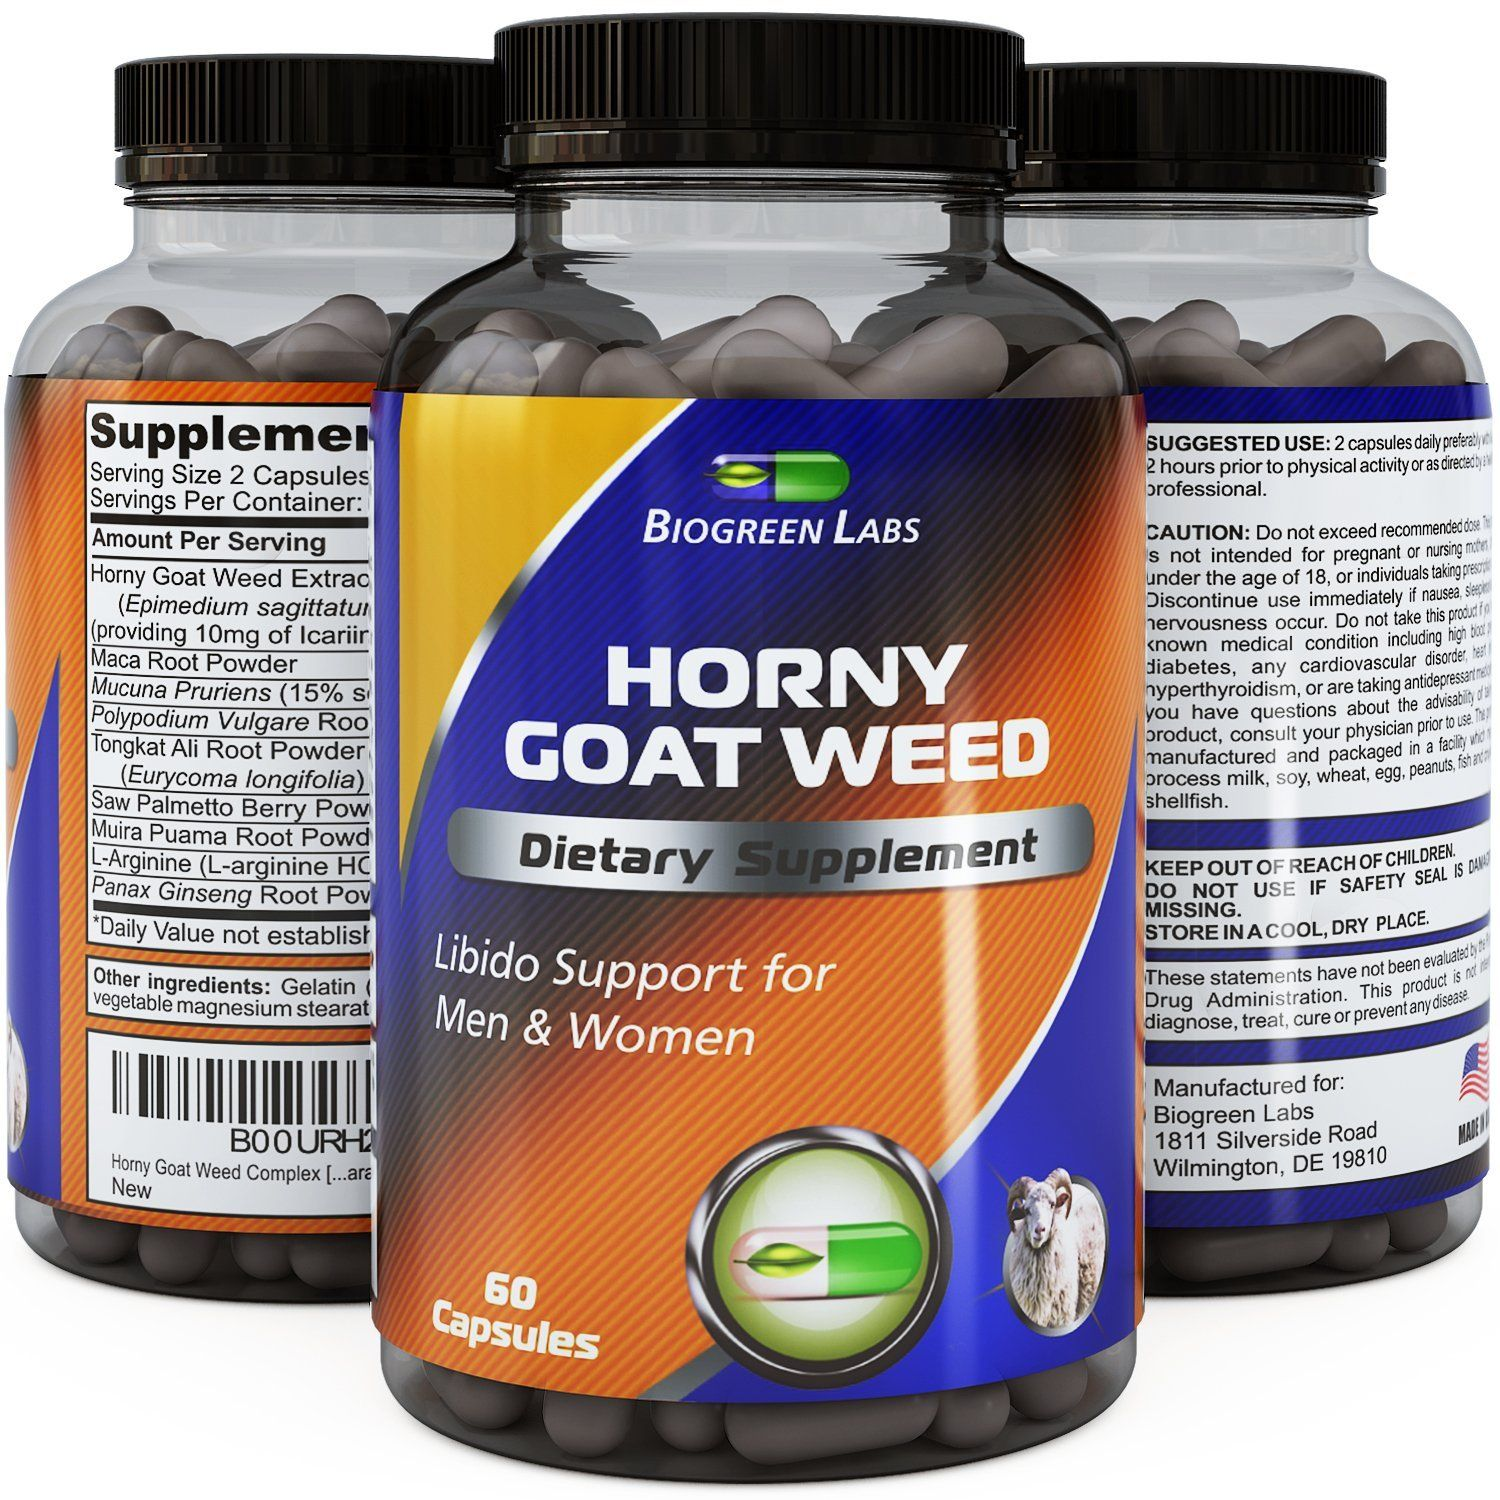 Horny Goat Weed Complex [] 1000 mg Pure Horny Goat Weed Extract with Tongkat Ali Root Powder [] 100% Pure and Natural Maca Root Extract [] Pharmaceutical Grade Maca Root Powder [] Effective and Potent Herbal Supplement for Increased Stamina [] Rapid Release Capsule Improves Energy Levels and Stamina [] Made in the USA [] Guaranteed by Biogreen Labs > Stop everything and read more details here! : Herbal Supplements